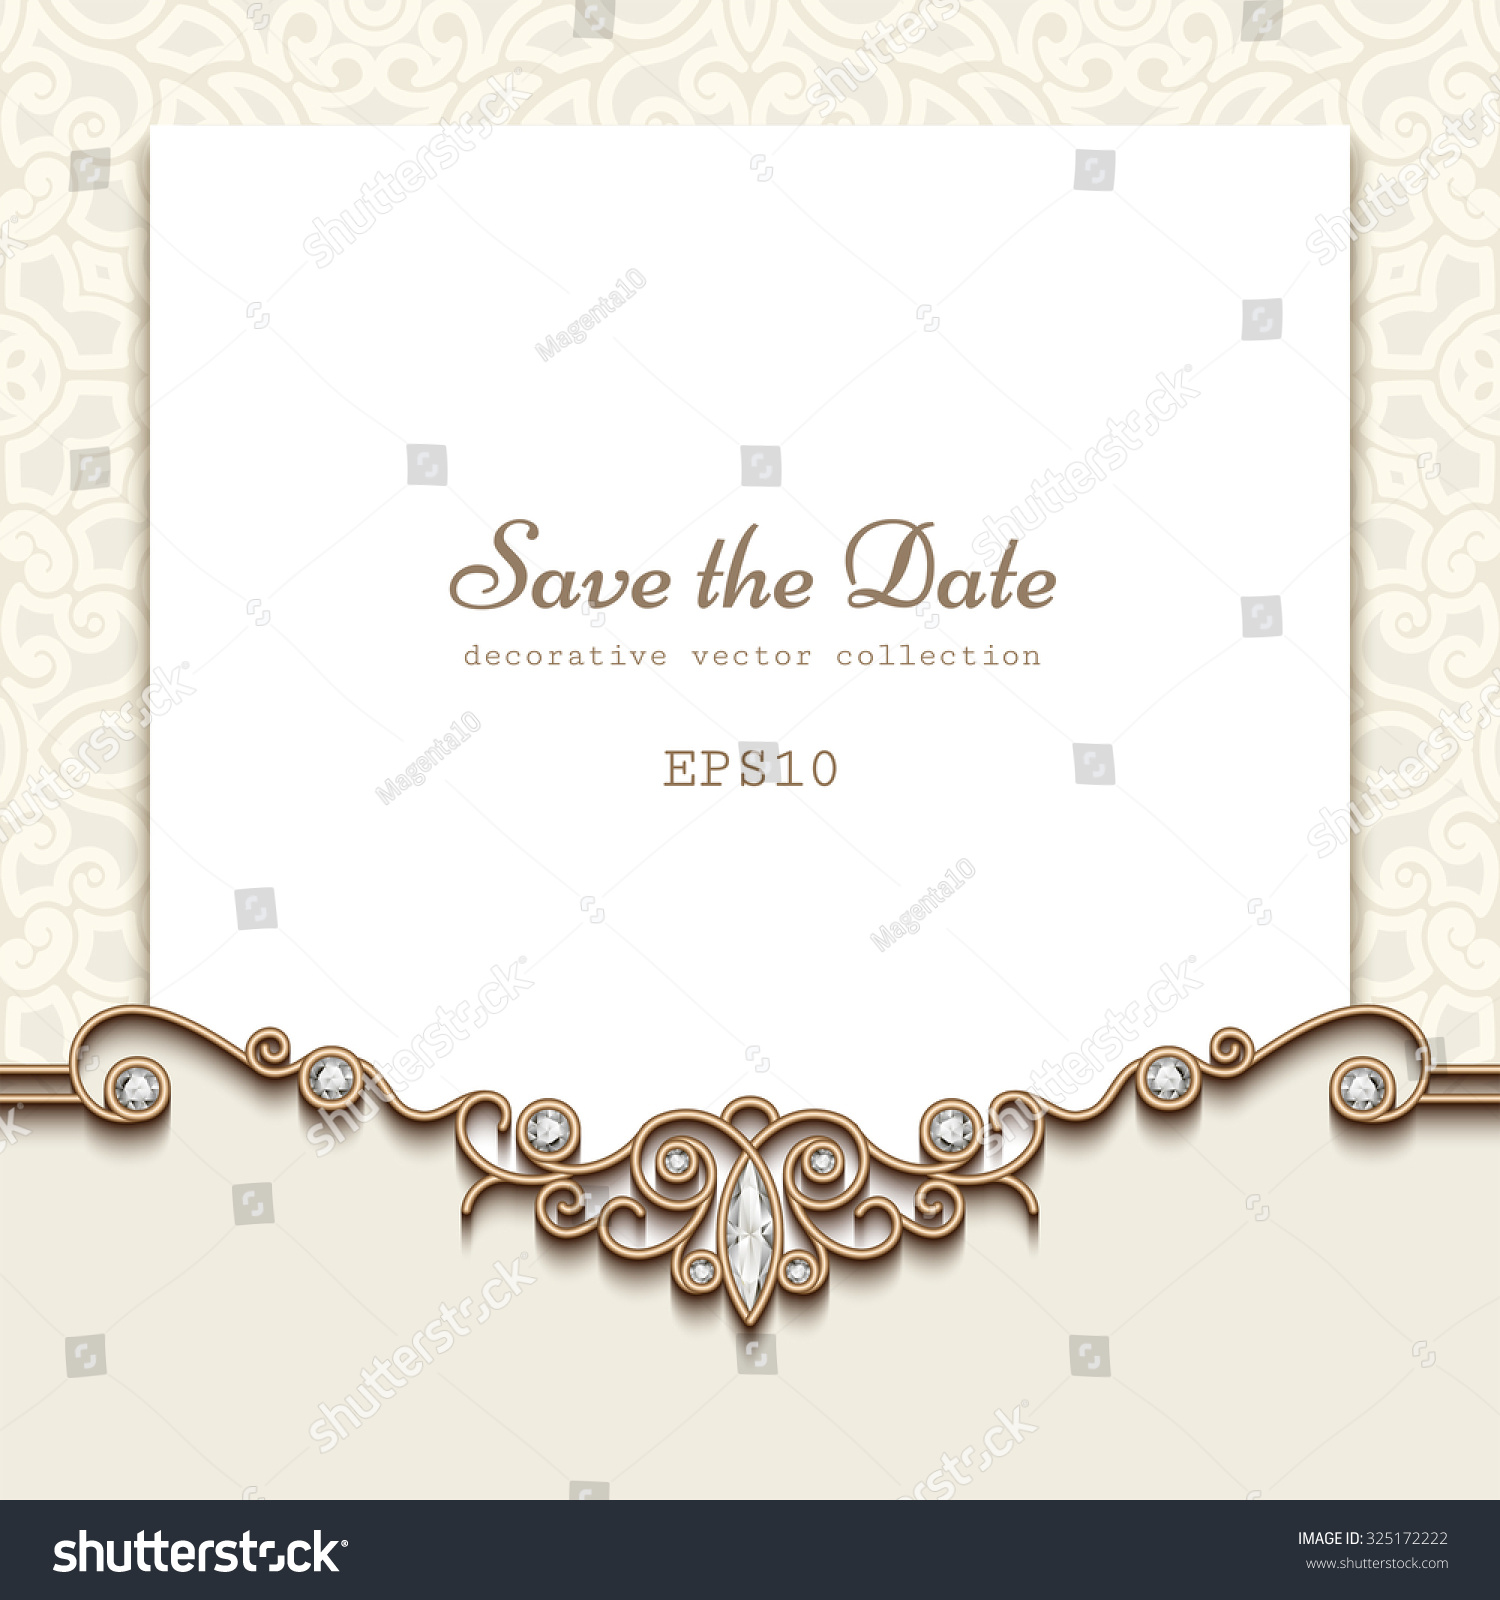 elegant save date card jewelry diamond のベクター画像素材